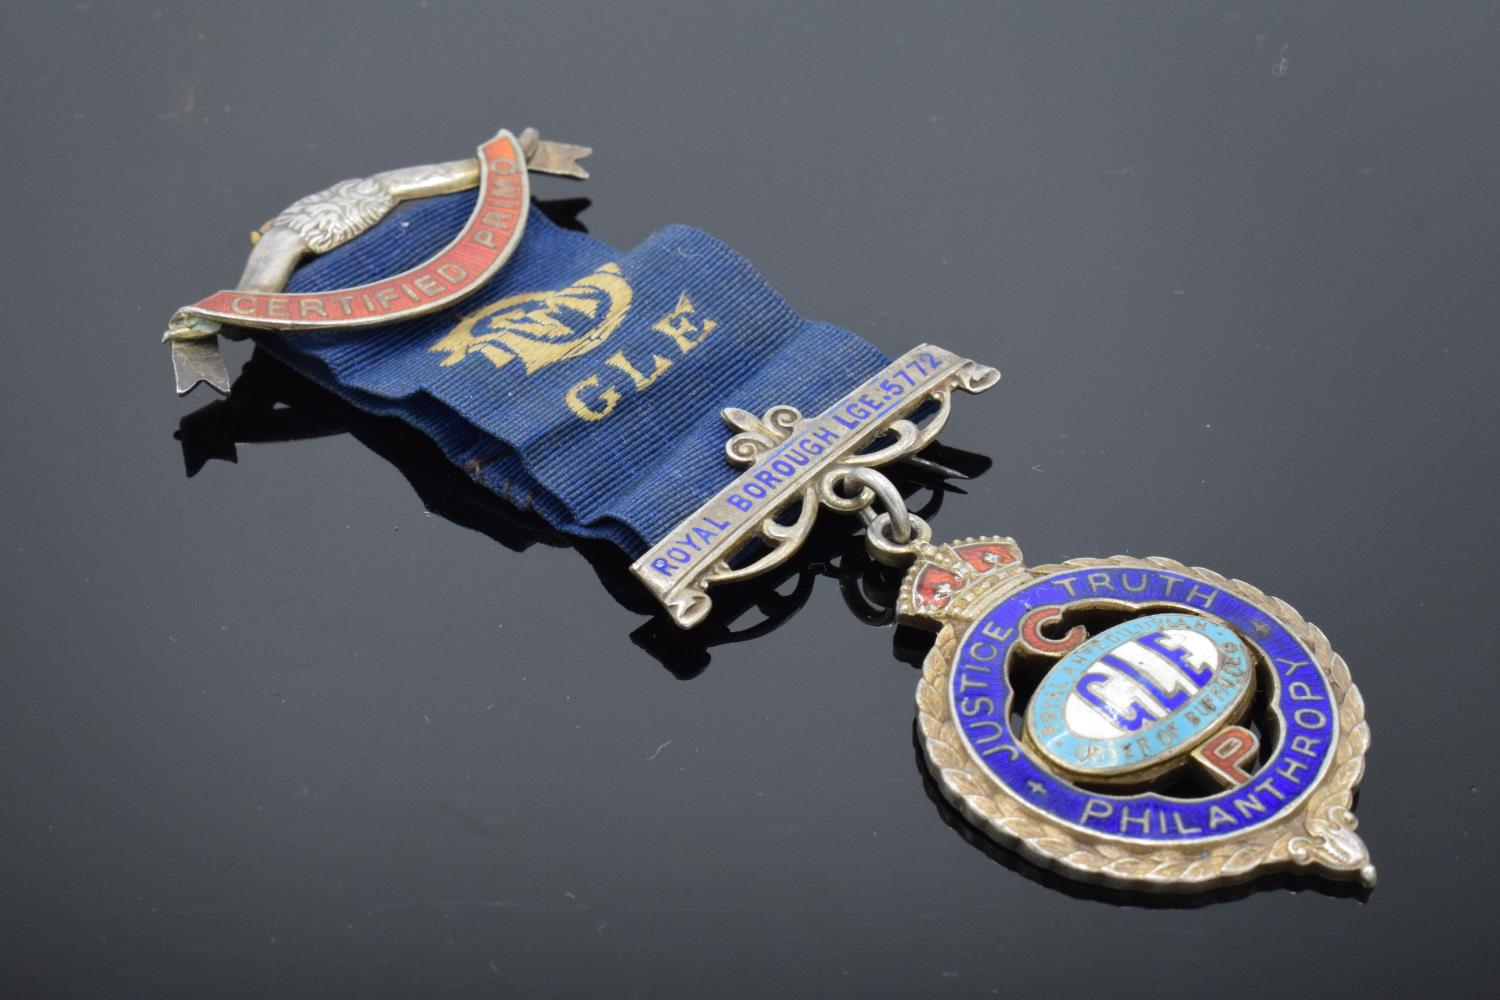 A silver medal and ribbon presented to Arthur J Thorne by the Royal Borough Lodge (GLE) Birmingham - Image 2 of 12